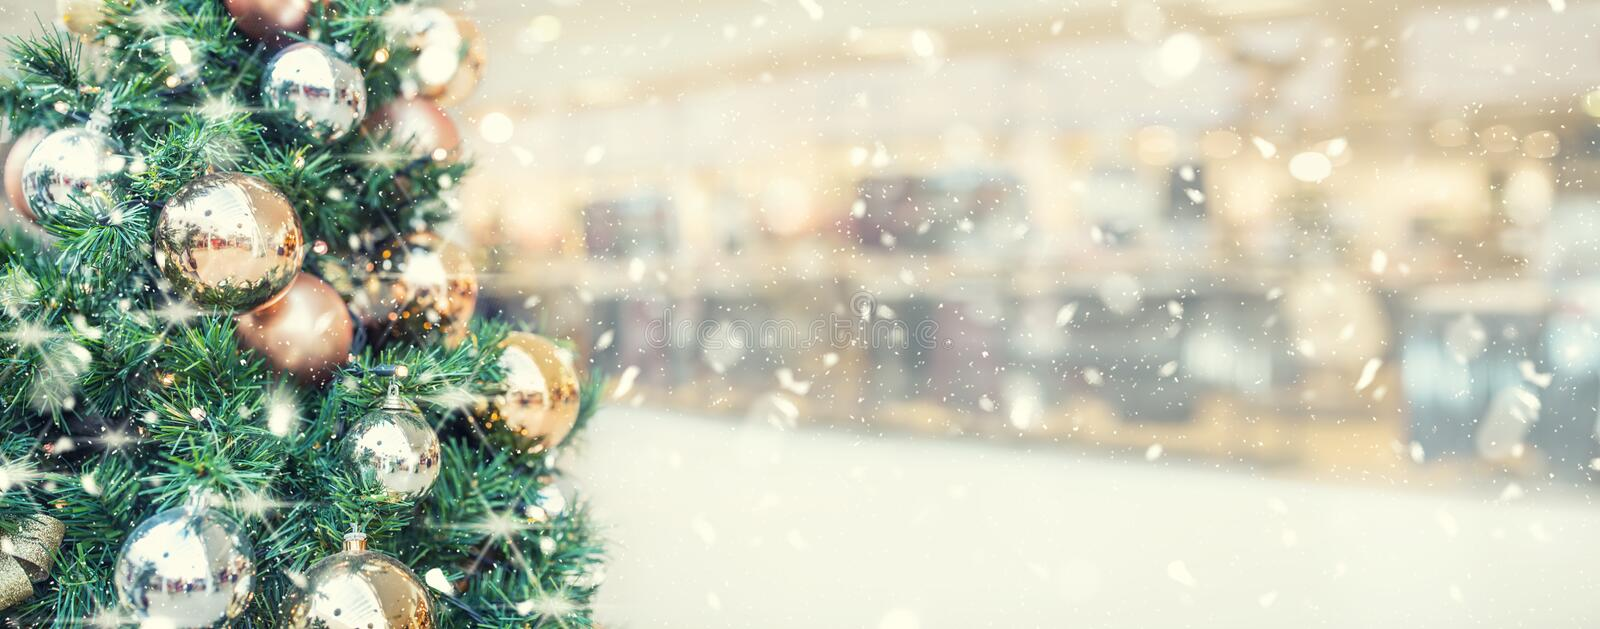 Christmas tree with gold decoration in shopping mall - panoramic. Blurred banner royalty free stock image